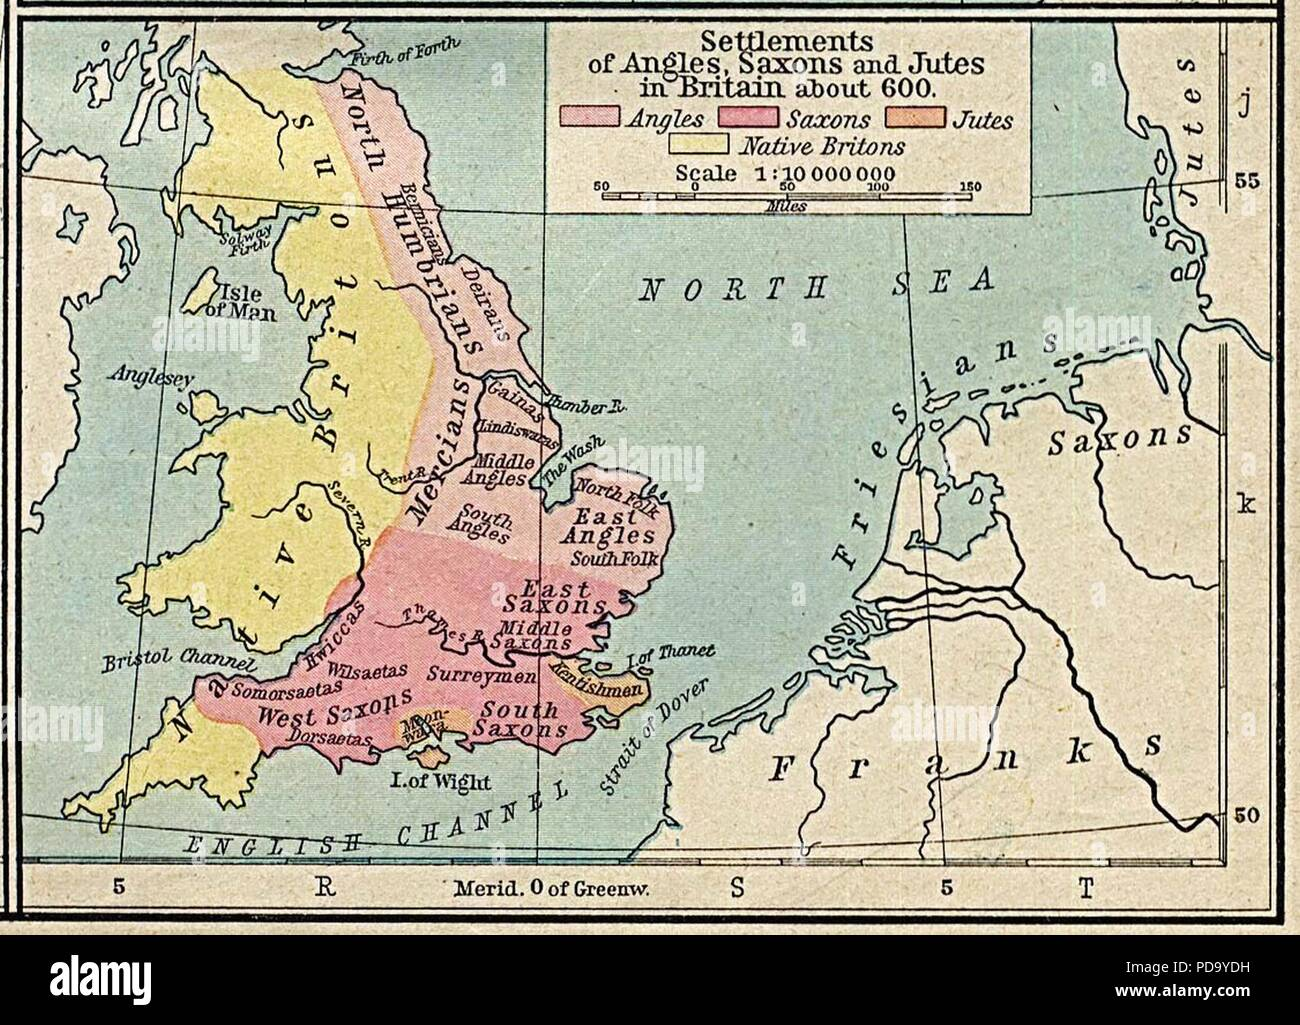 Angles, Saxons, Jutes in Britain year 600. - Stock Image